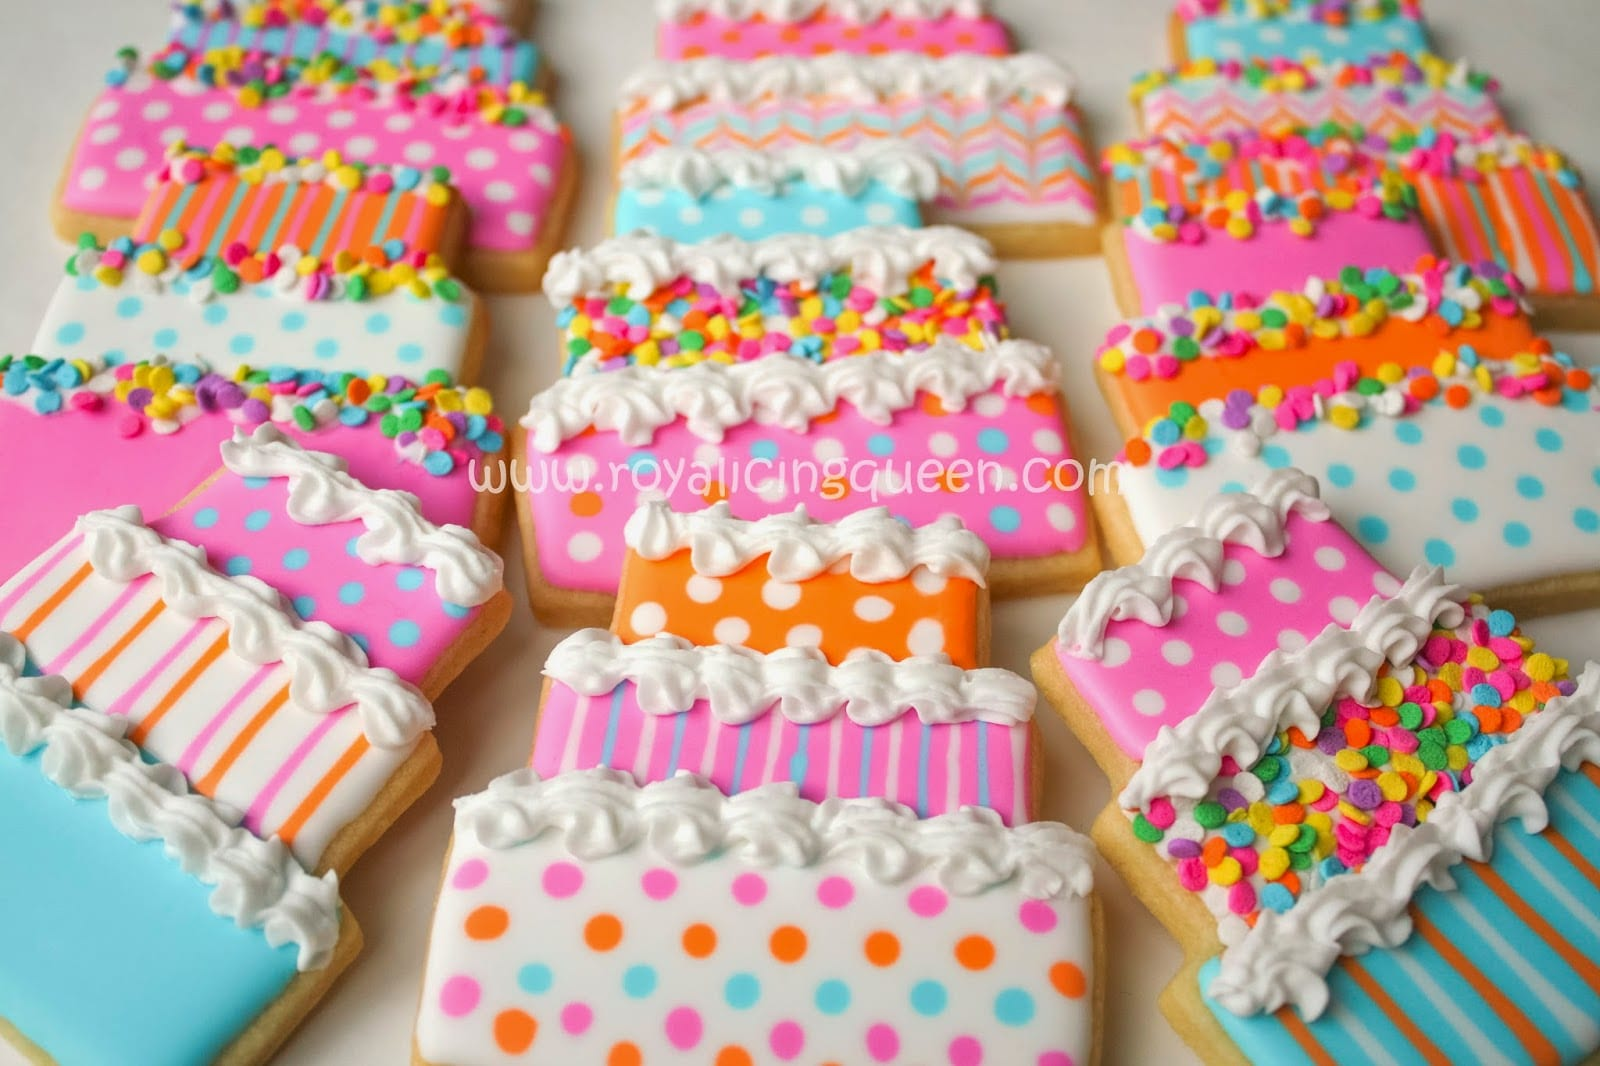 The Royal Icing Queen  Birthday Cake Cookies